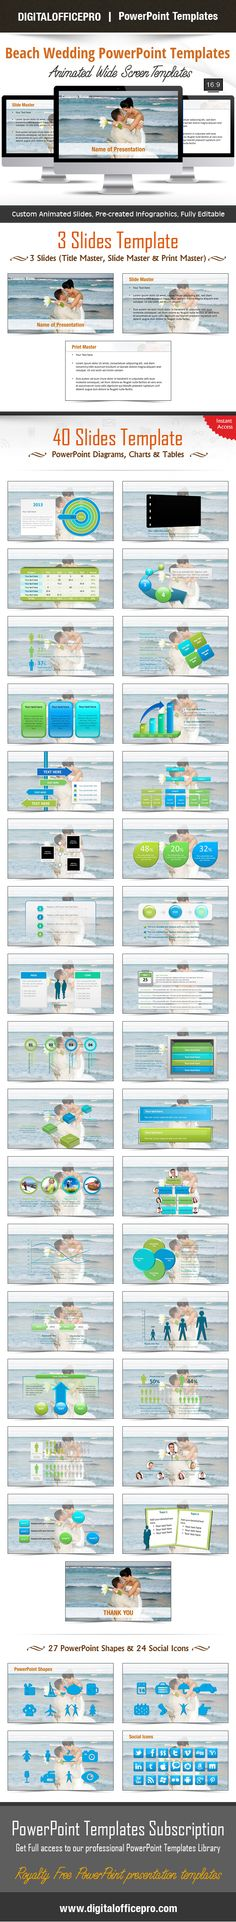 Hypodermic Needles PowerPoint Template Backgrounds Hypodermic needle - wedding powerpoint template